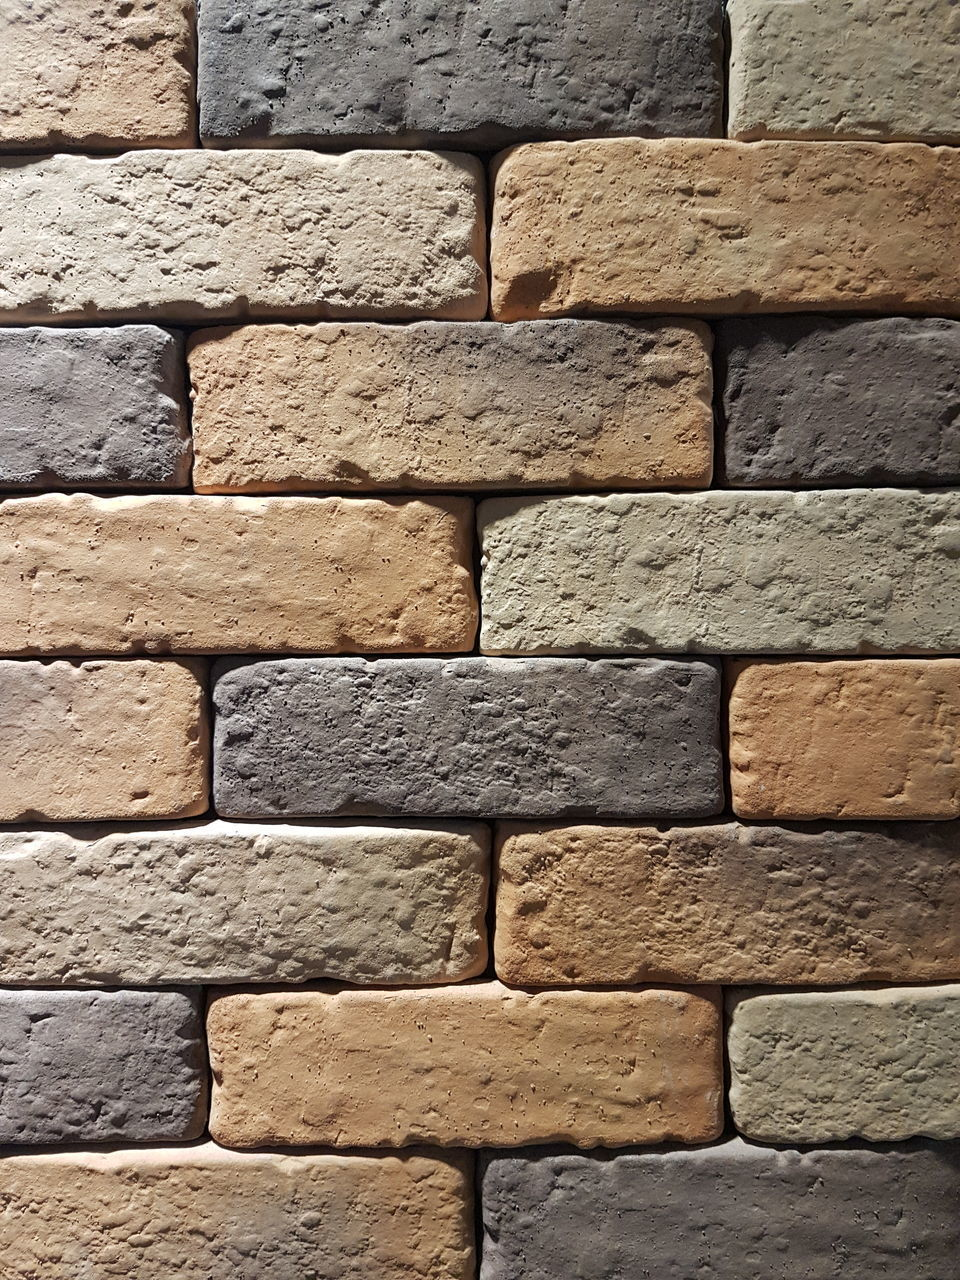 full frame, backgrounds, wall - building feature, architecture, textured, wall, brick, built structure, brick wall, pattern, no people, rectangle, stone wall, day, repetition, close-up, solid, outdoors, gray, rough